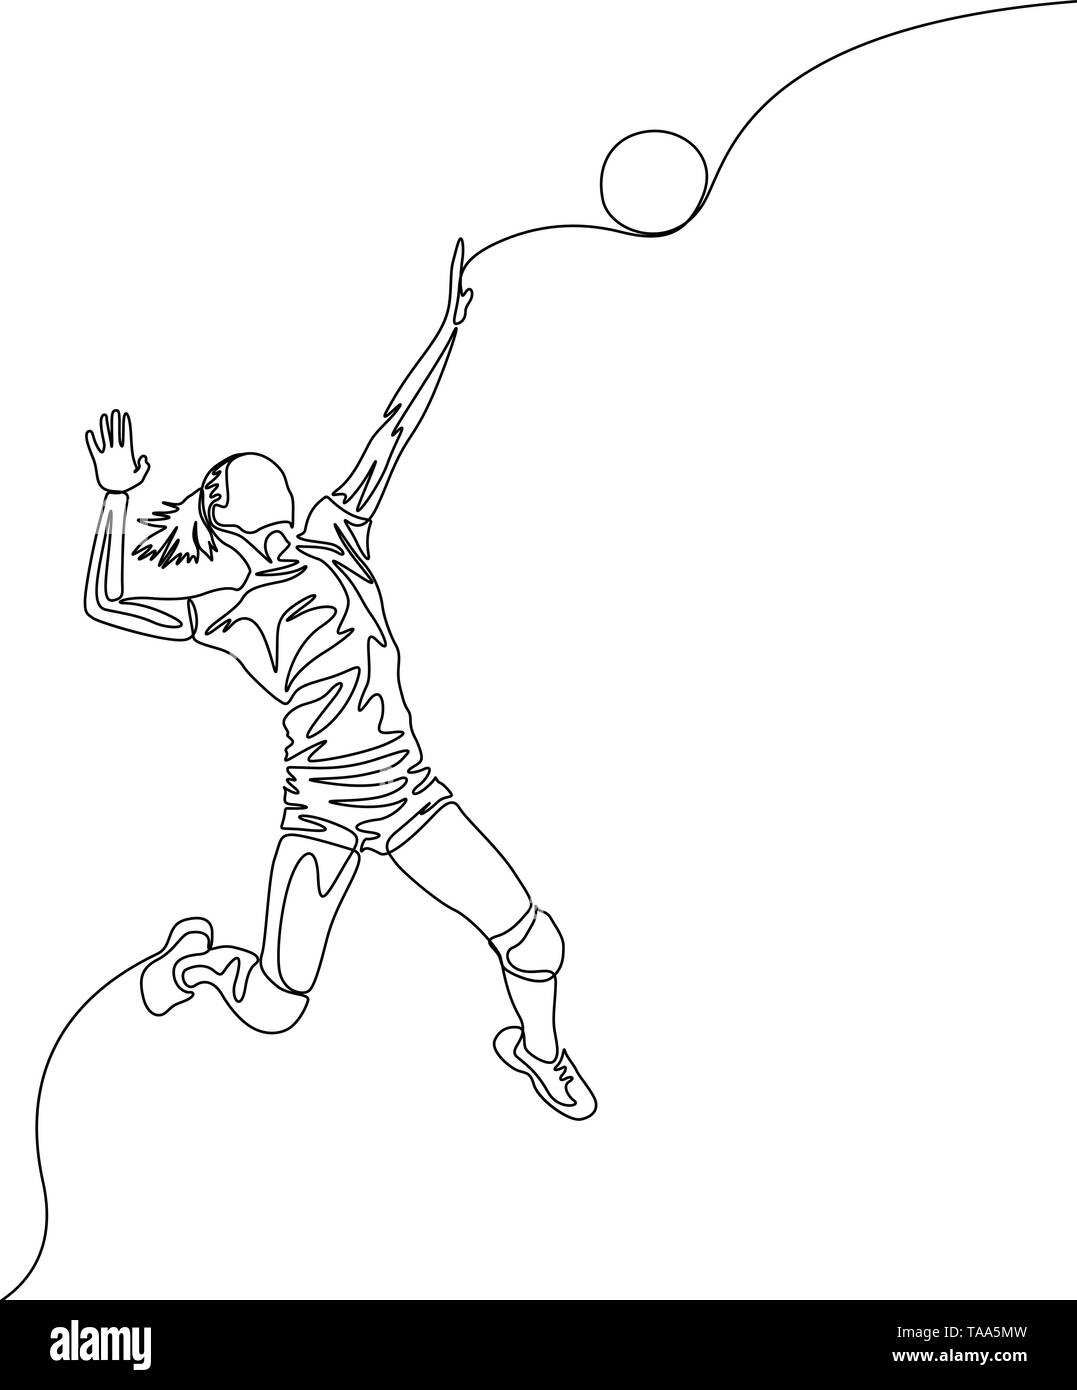 Continuous one line volleyball player woman jumps to throw the ball - Stock Image